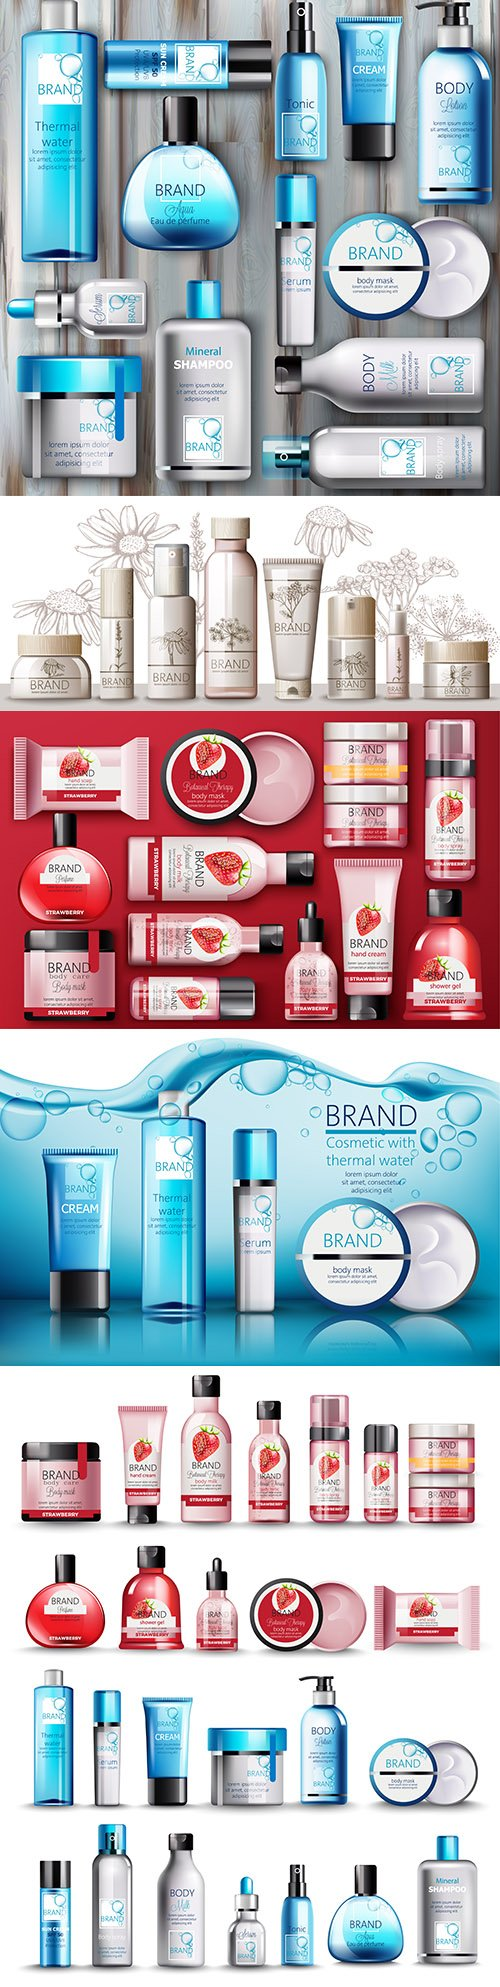 Body cosmetics set Brand name with place for text 3d illustration 2